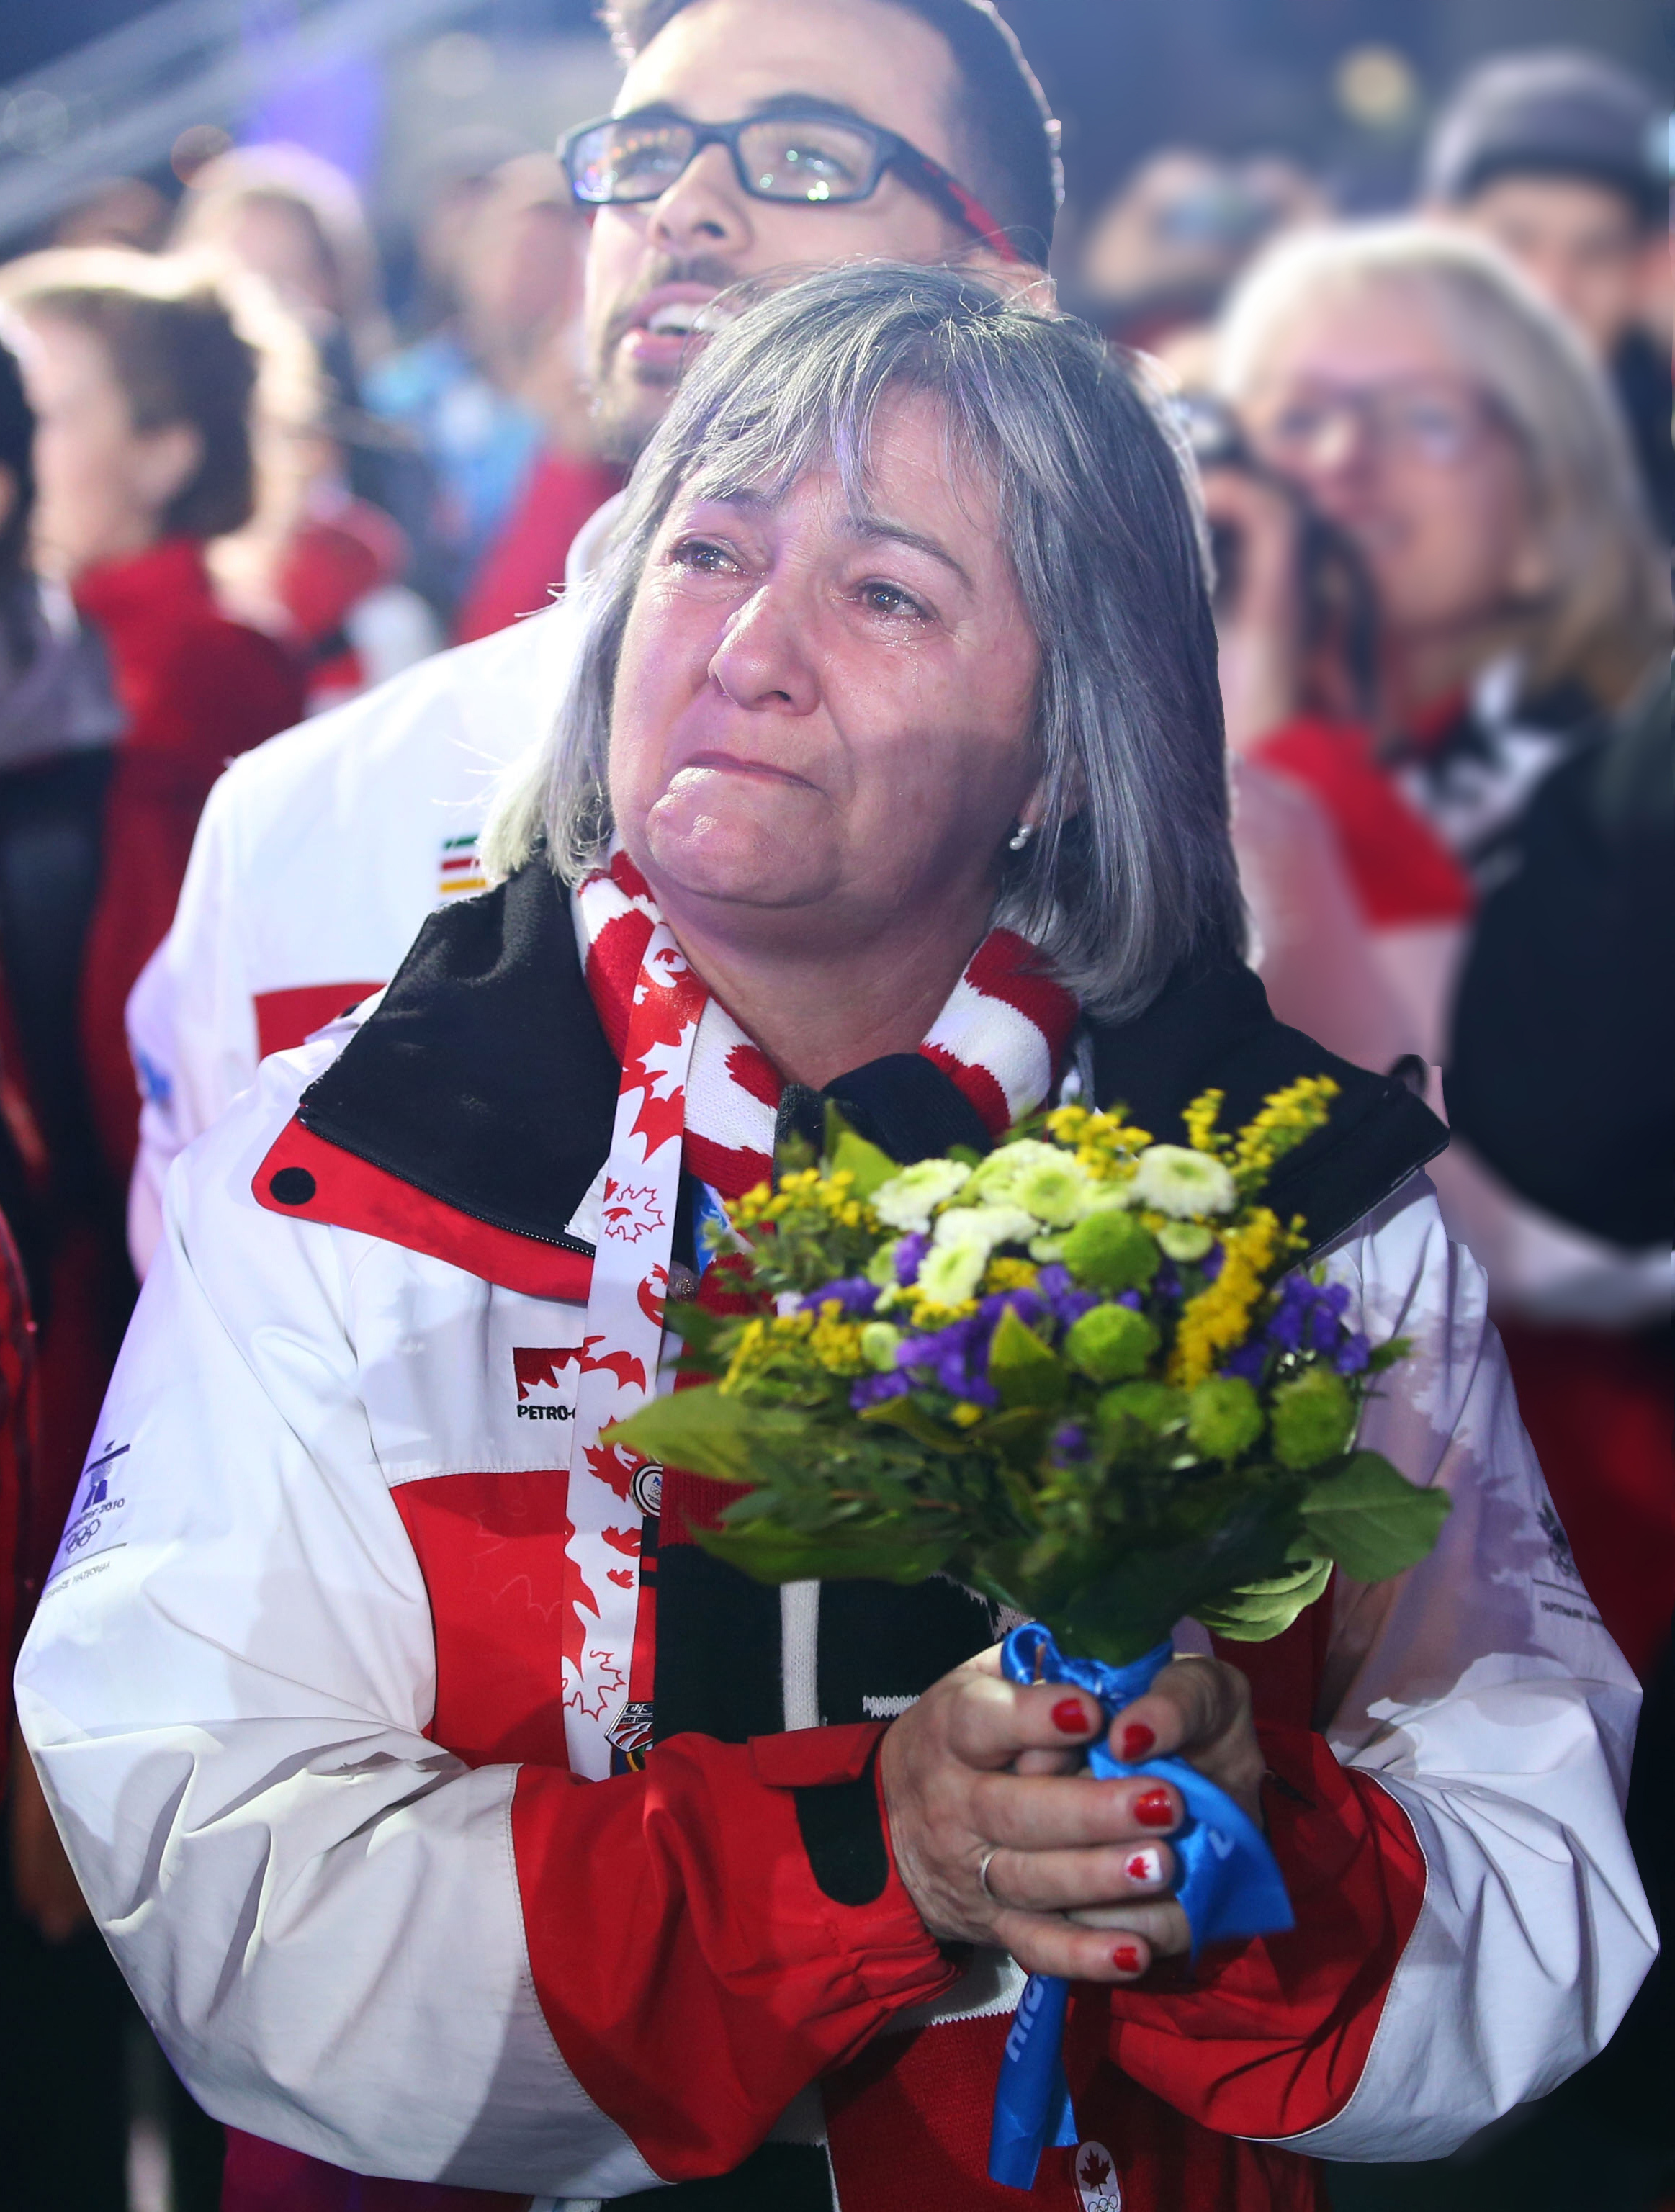 Manon Goulet, mother of short track speed skater Charles Hamelin, along with his brother, François, look on as Hamelin receives gold during the medal ceremony for the 1,500 metre in Sochi. As part of the P&G Thank You Mom campaign, the Hamelin brothers have spoken about the important role their mother has played in their journey to Sochi.